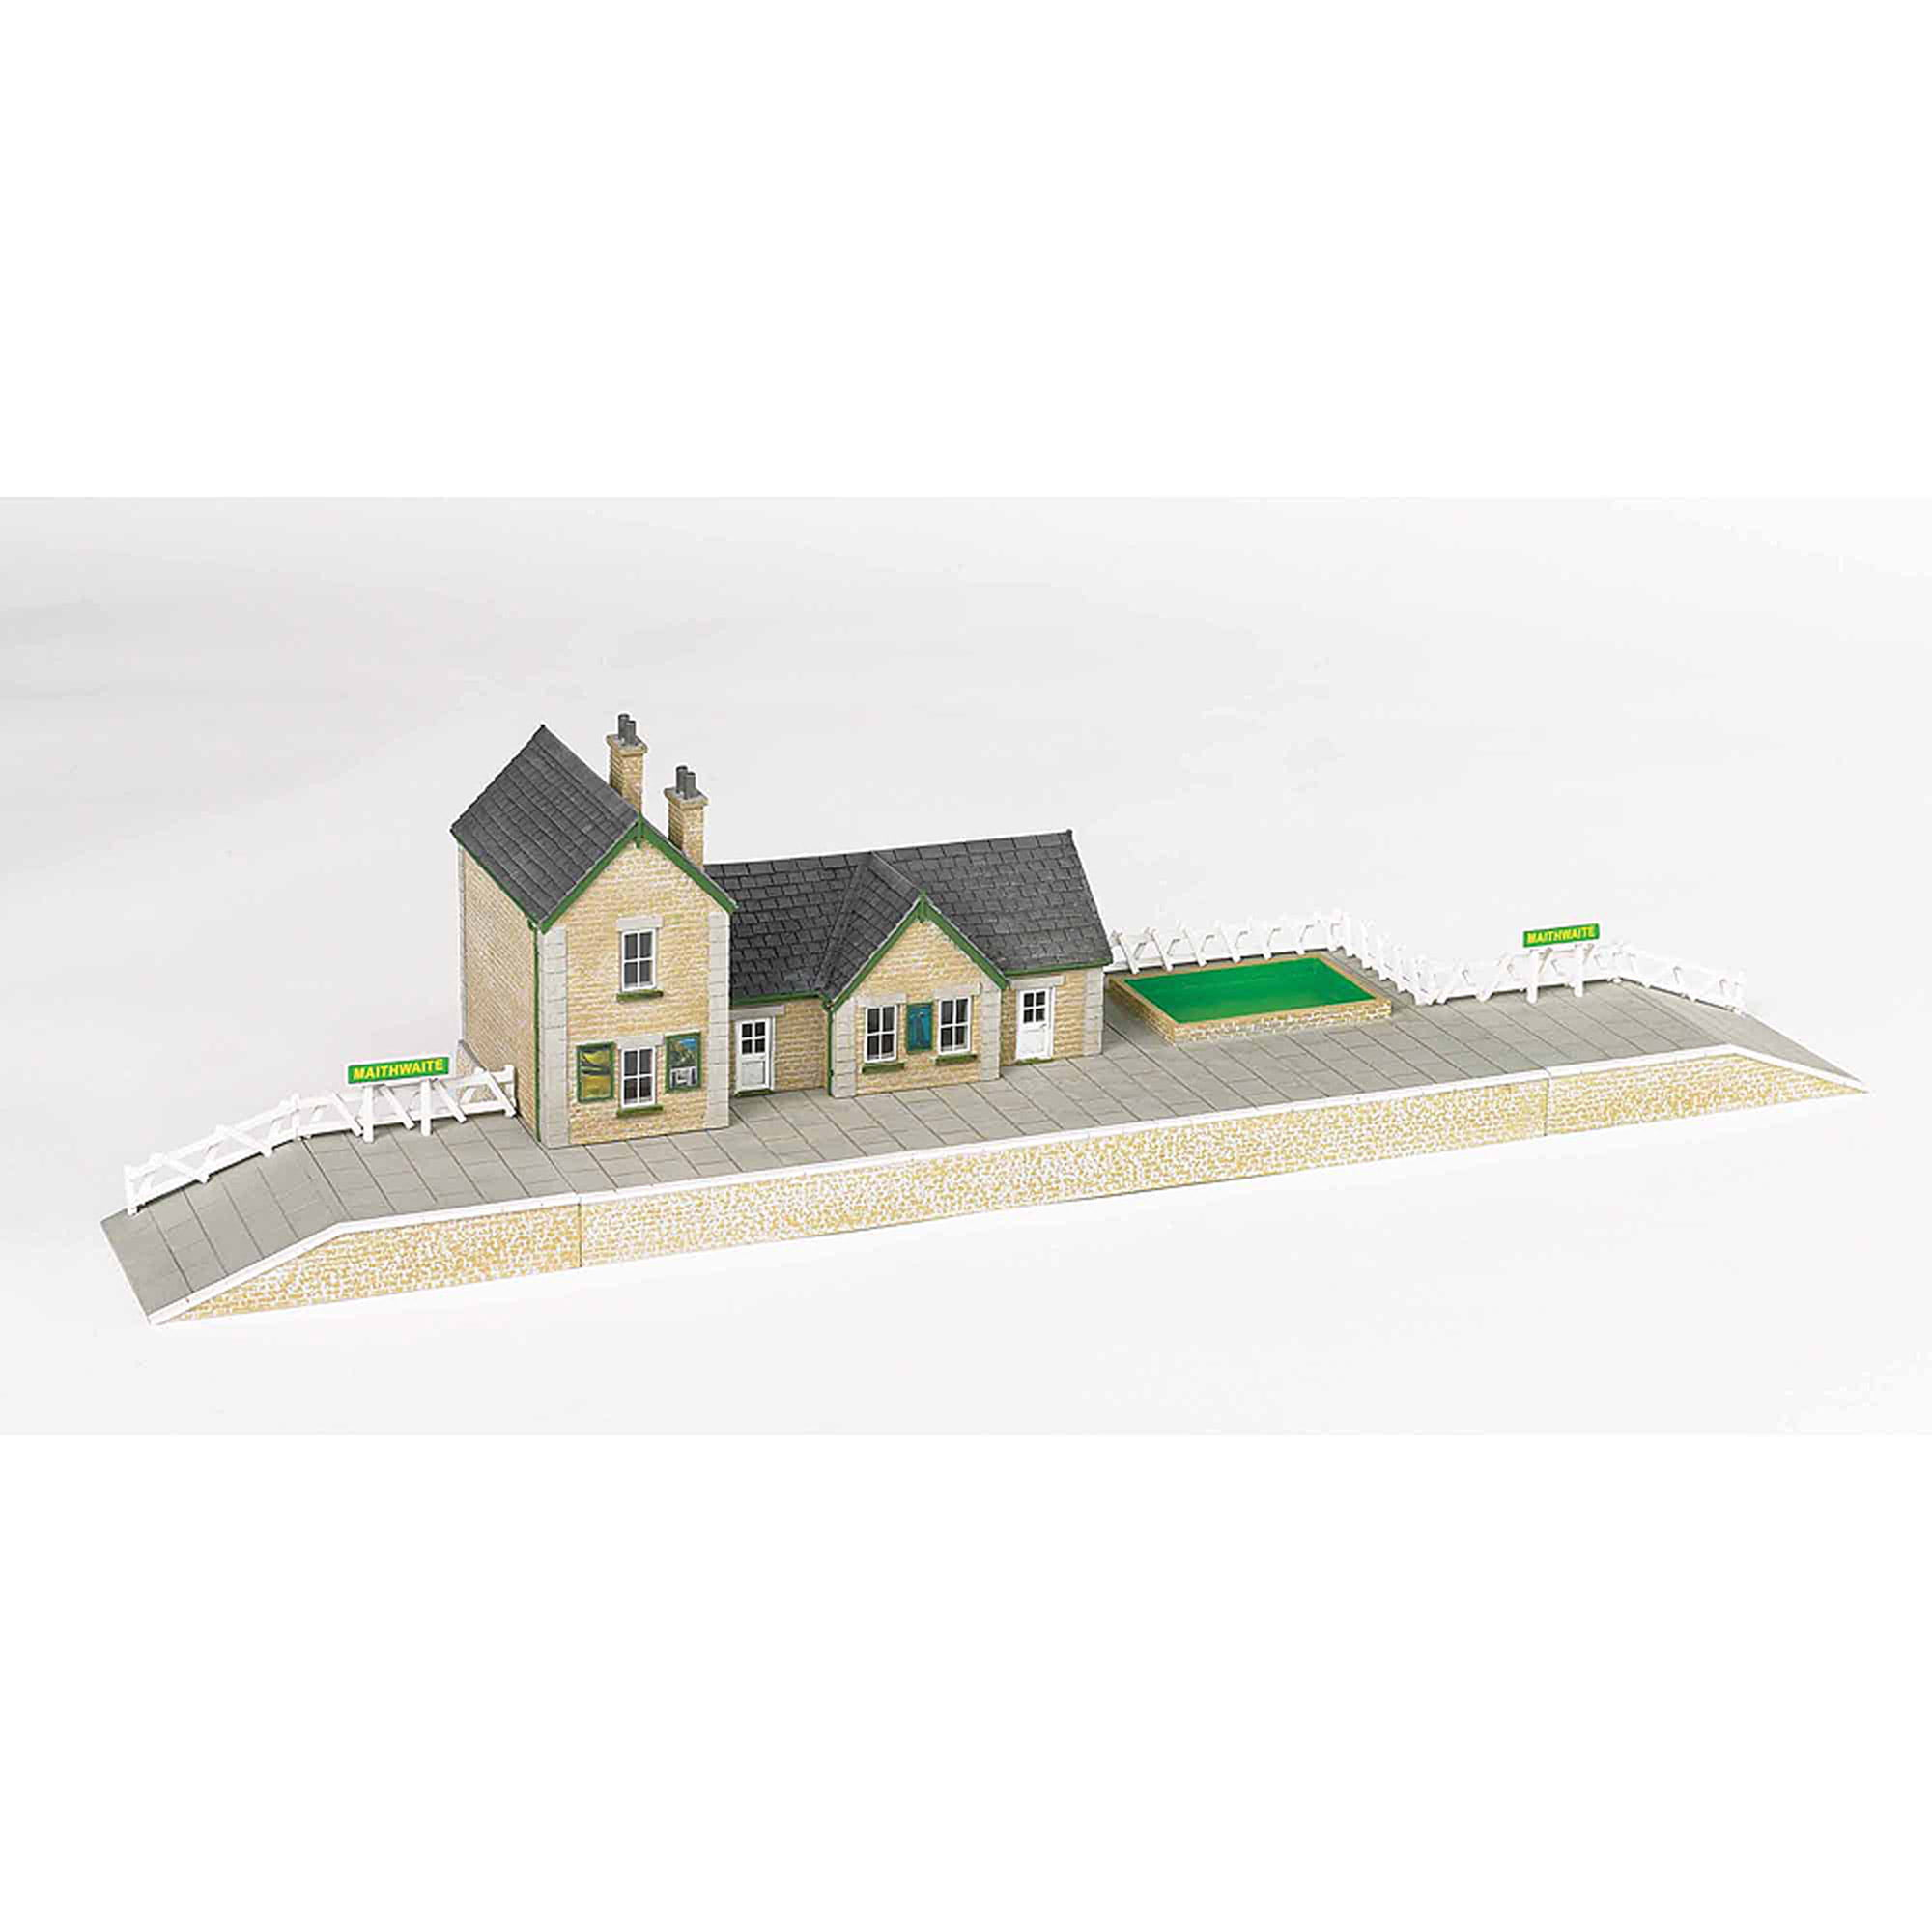 Bachmann Trains Thomas and Friends Maithwaite Station Resin Building Scenery Item, HO... by Bachmann Trains